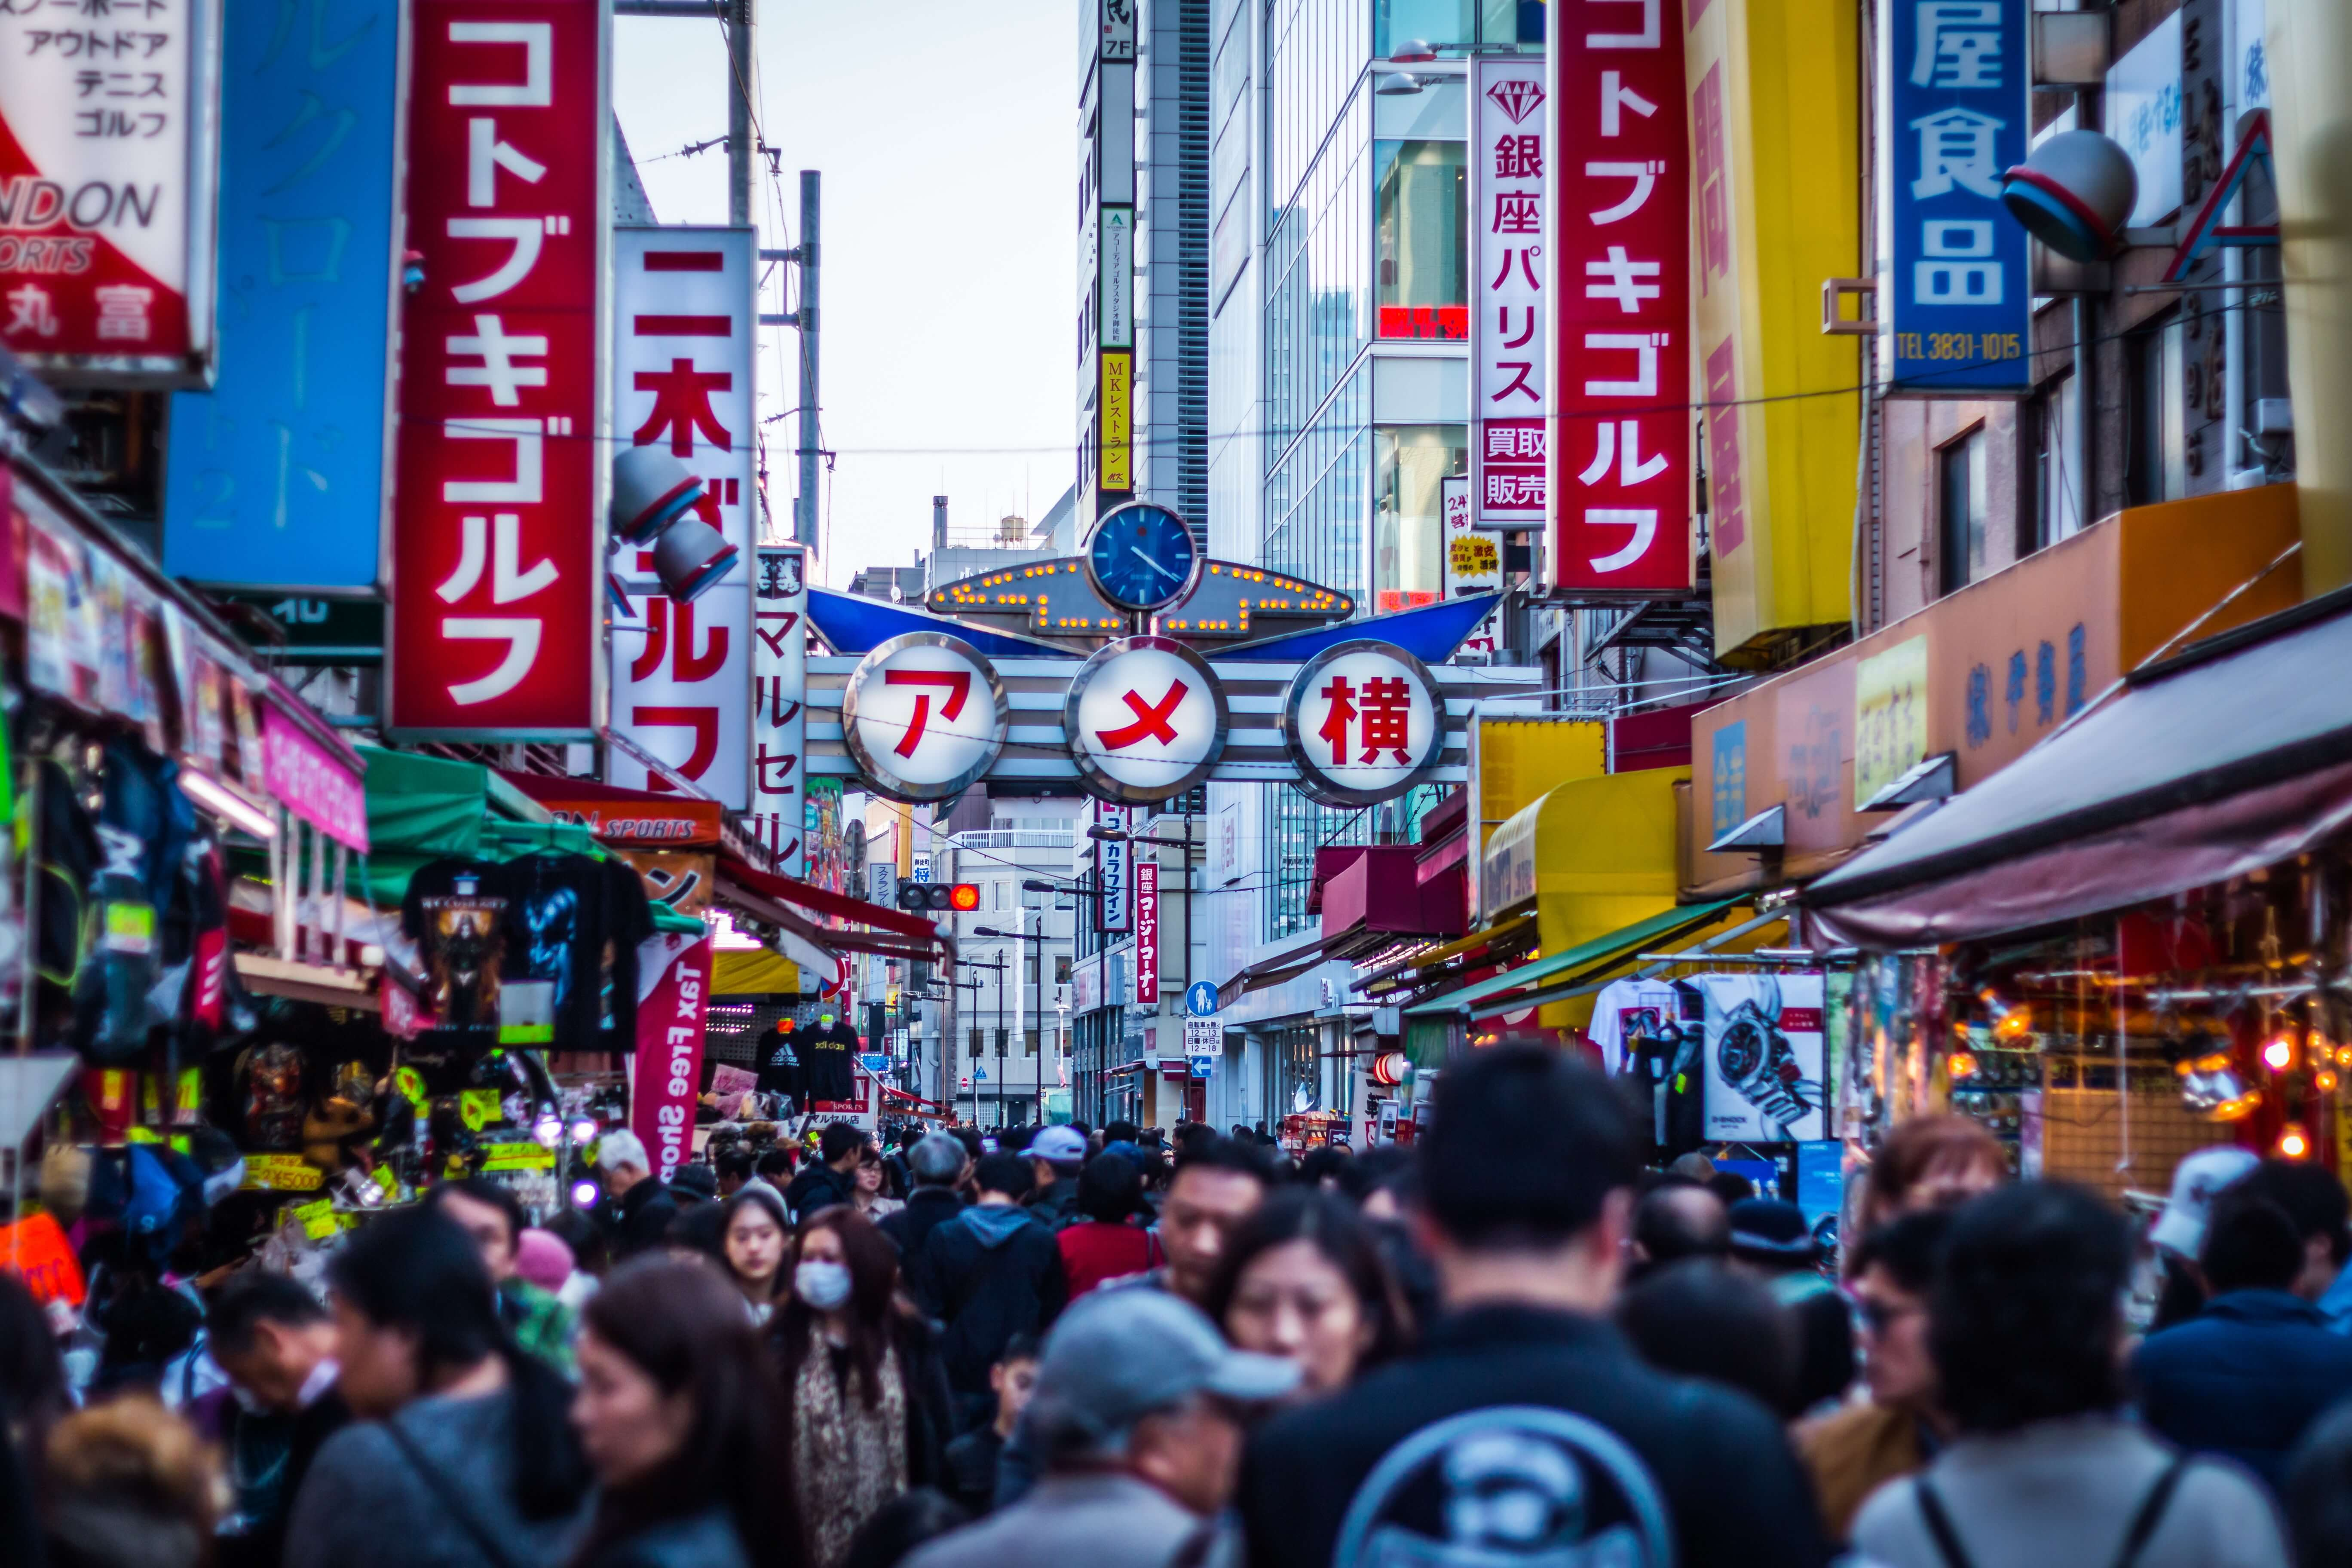 100 essential Japanese words to describe Japanese traditions and customs